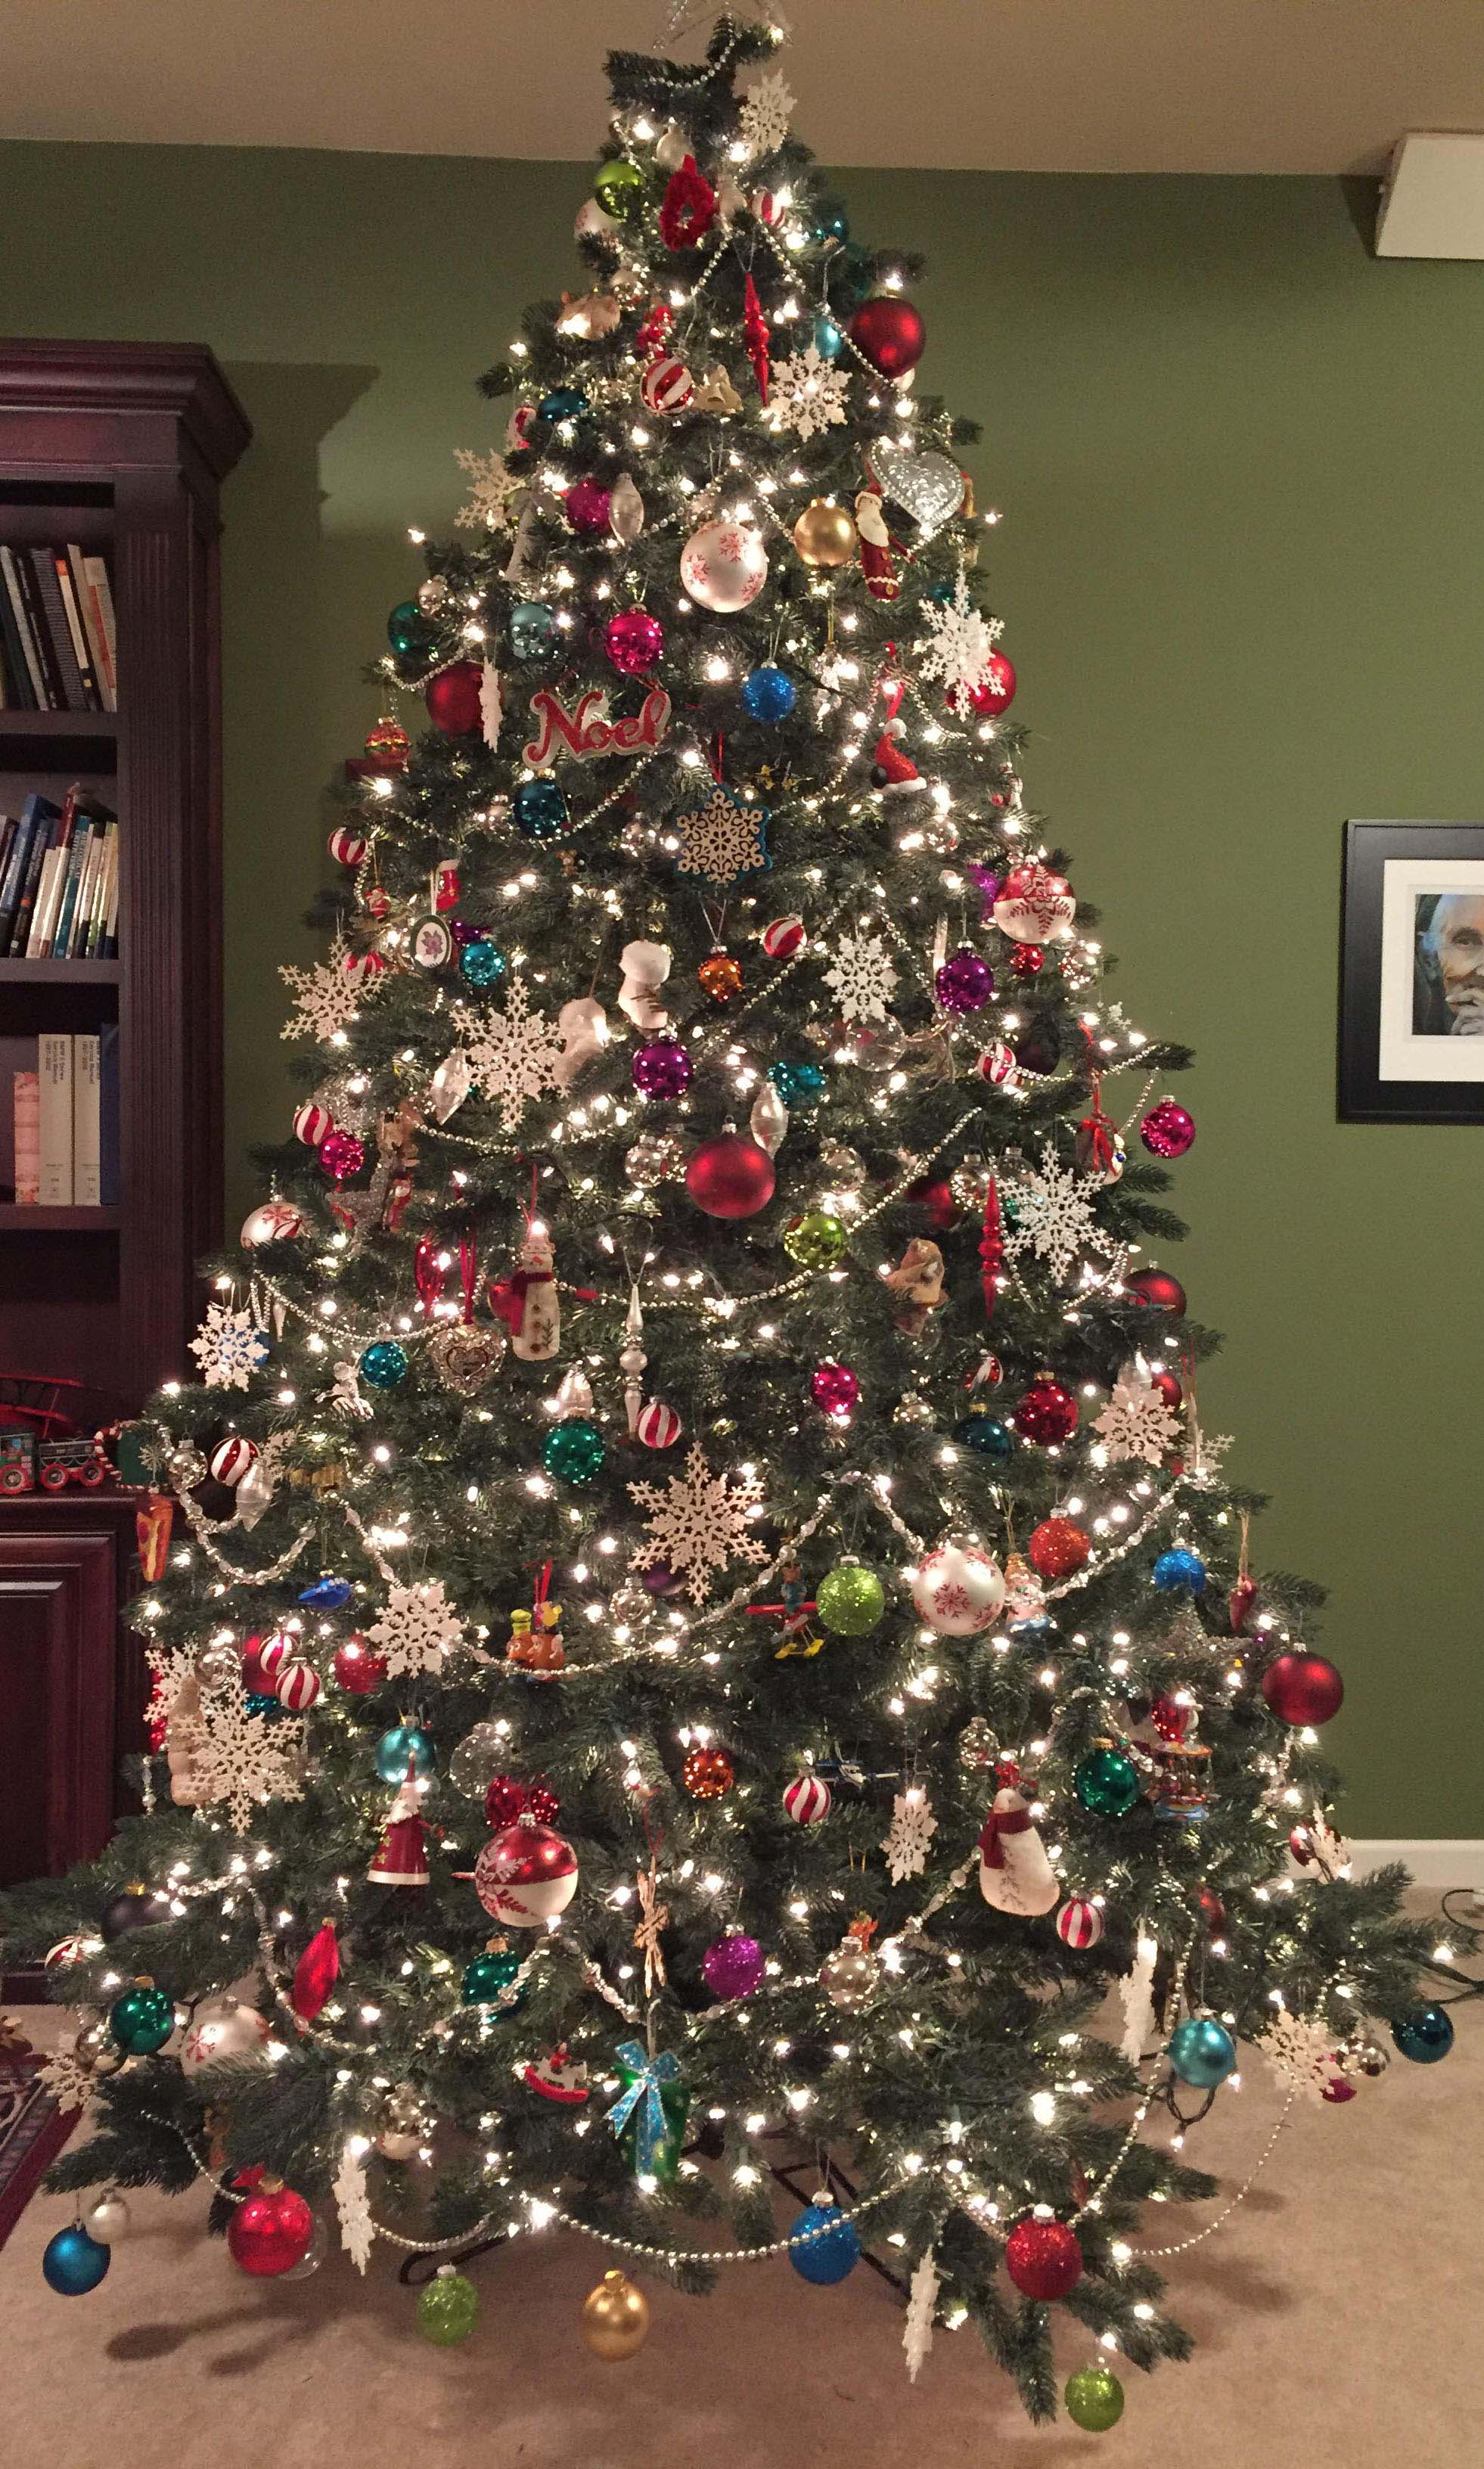 19 steps to a perfectly decorated christmas tree - Beautifully Decorated Christmas Tree Images